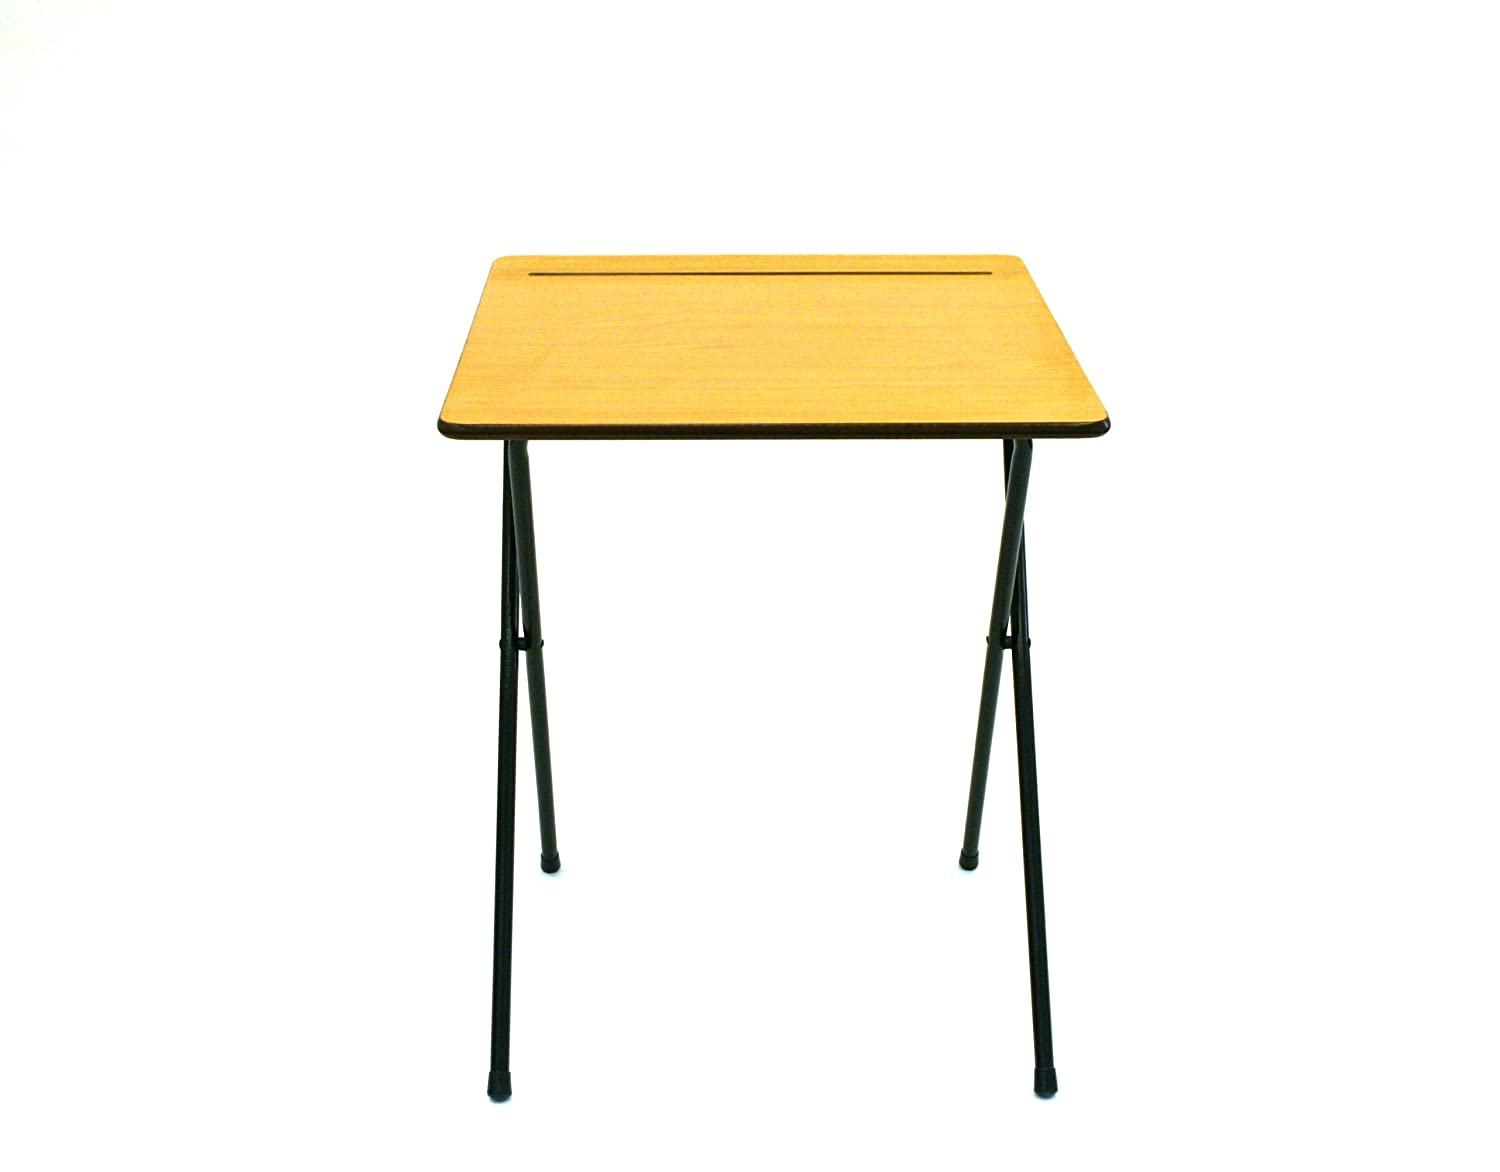 school table. Folding Exam Desk, Table, School Desk: Amazon.co.uk: Office Products Table